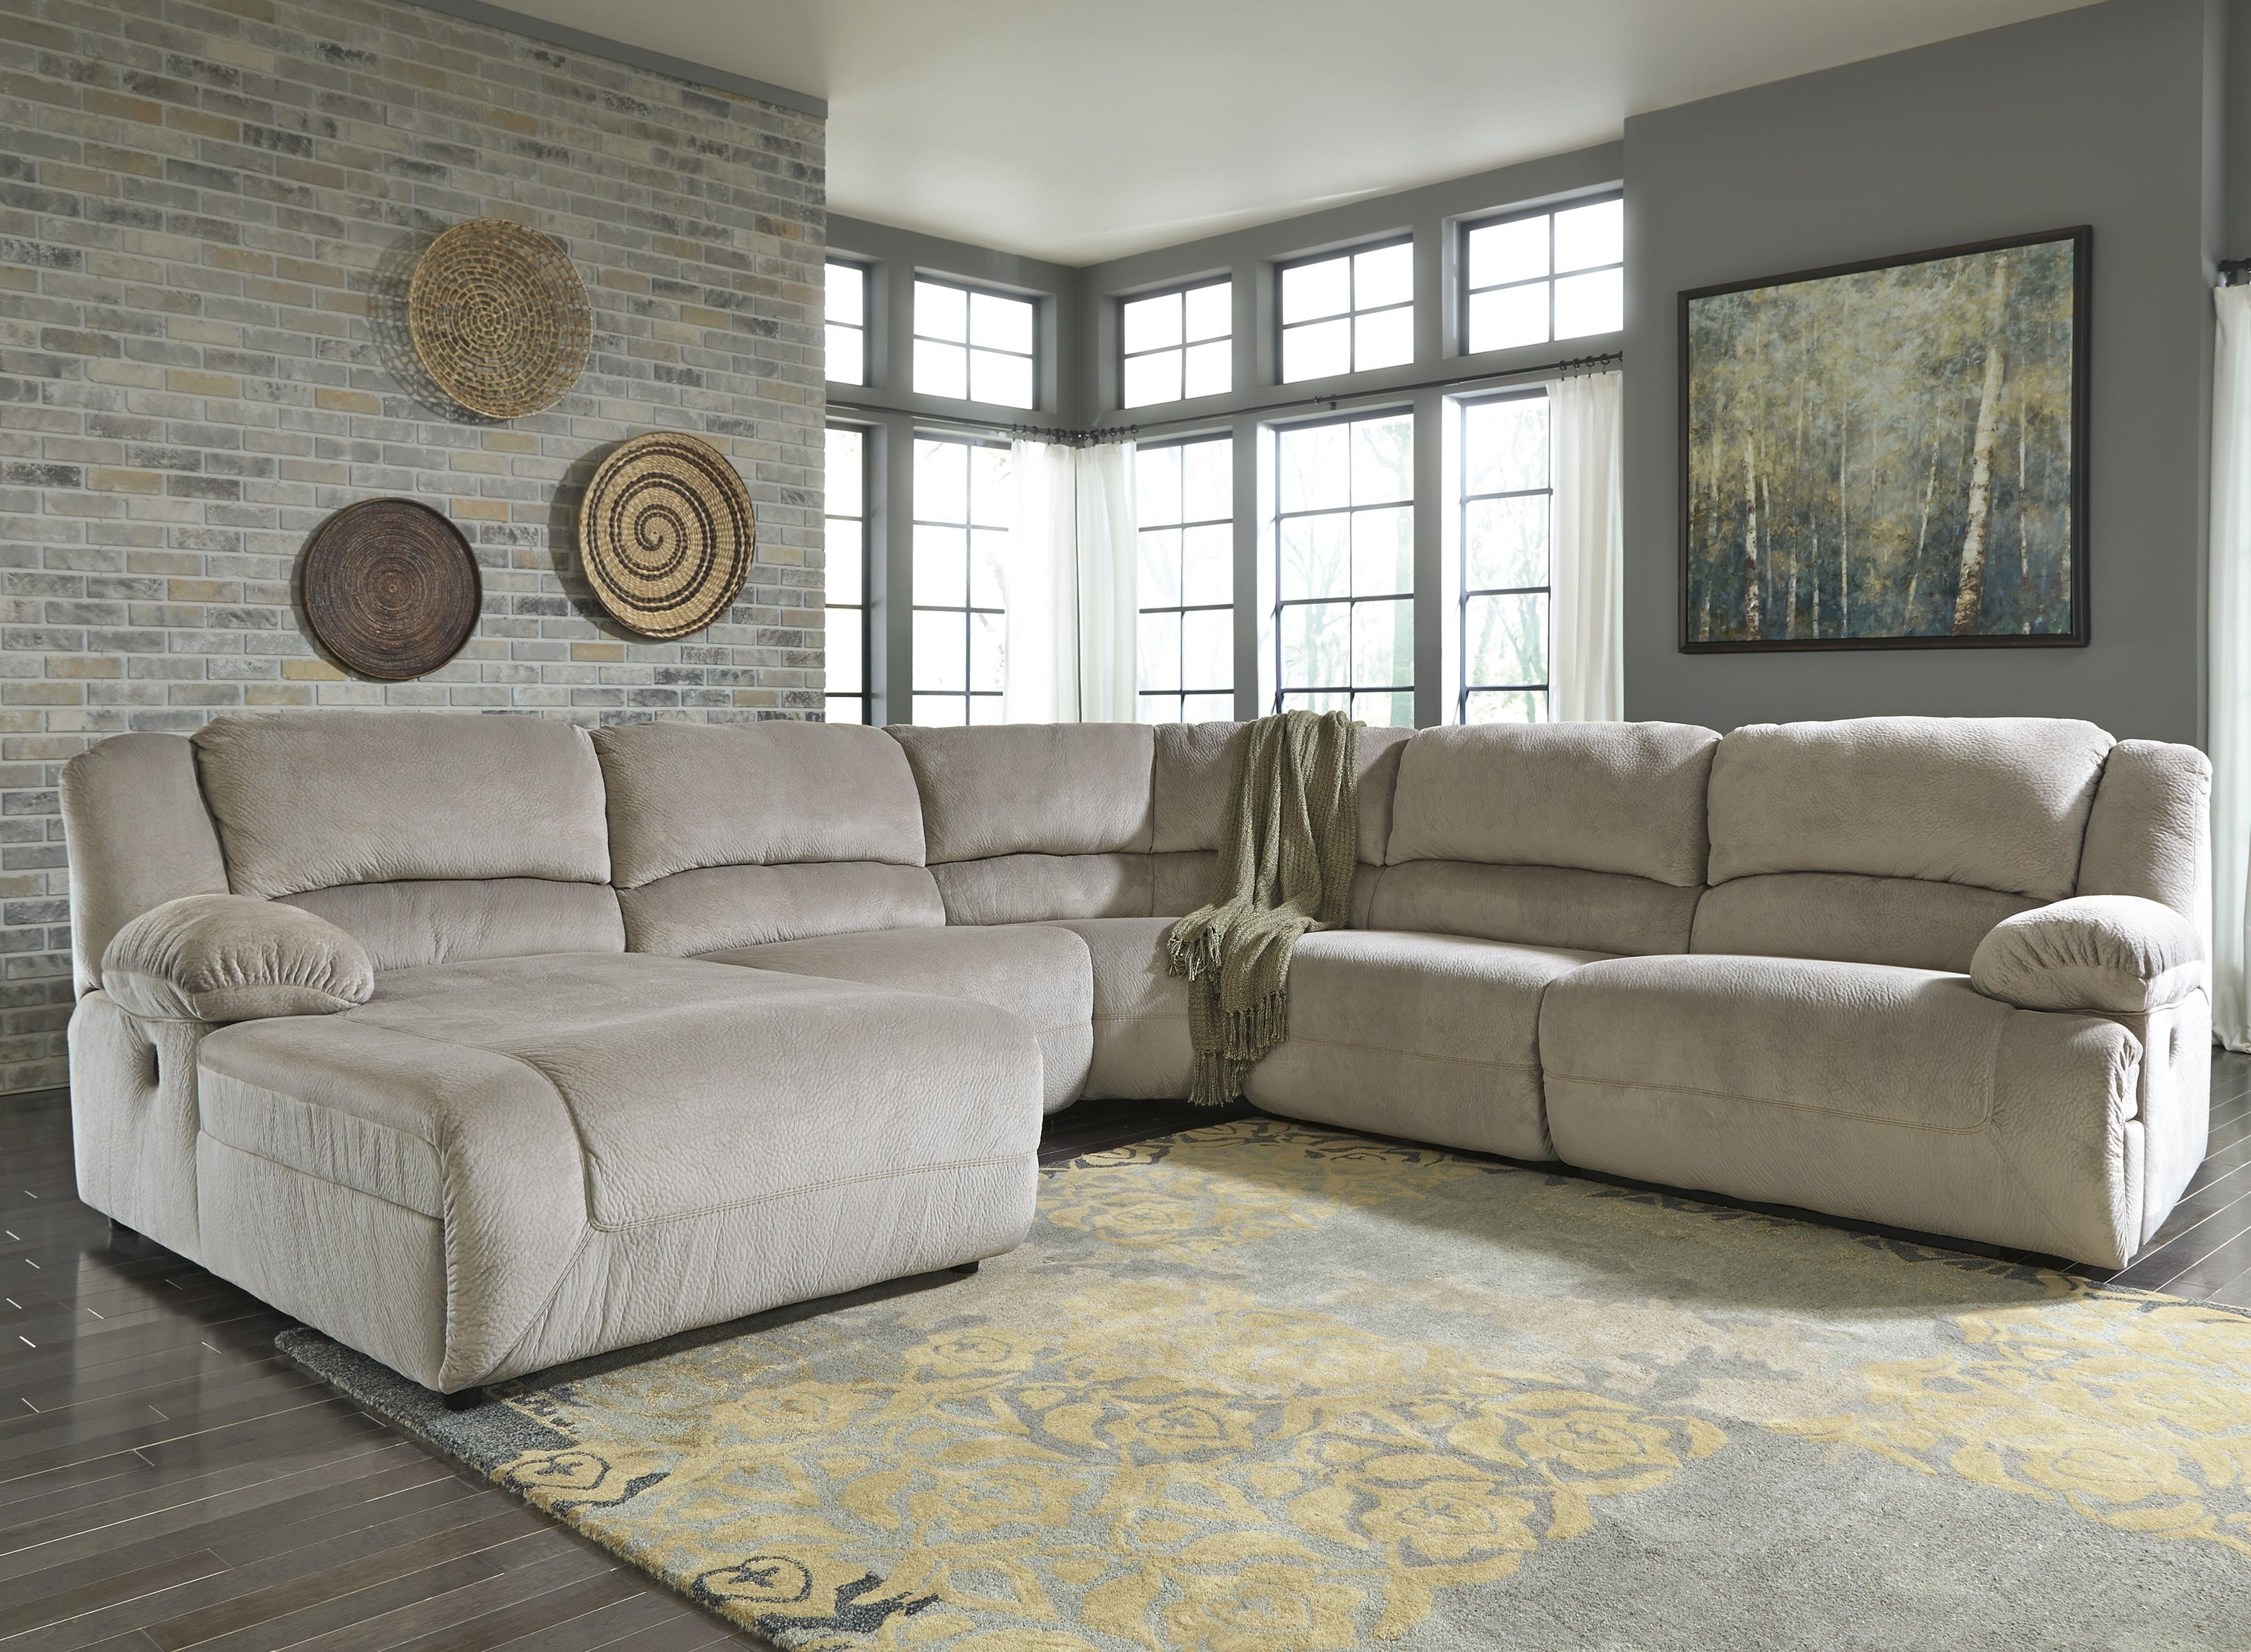 Toletta – Granite Power Reclining Sectional With Chaise Inside Famous Sectional Sofas With Recliners And Chaise (View 15 of 15)